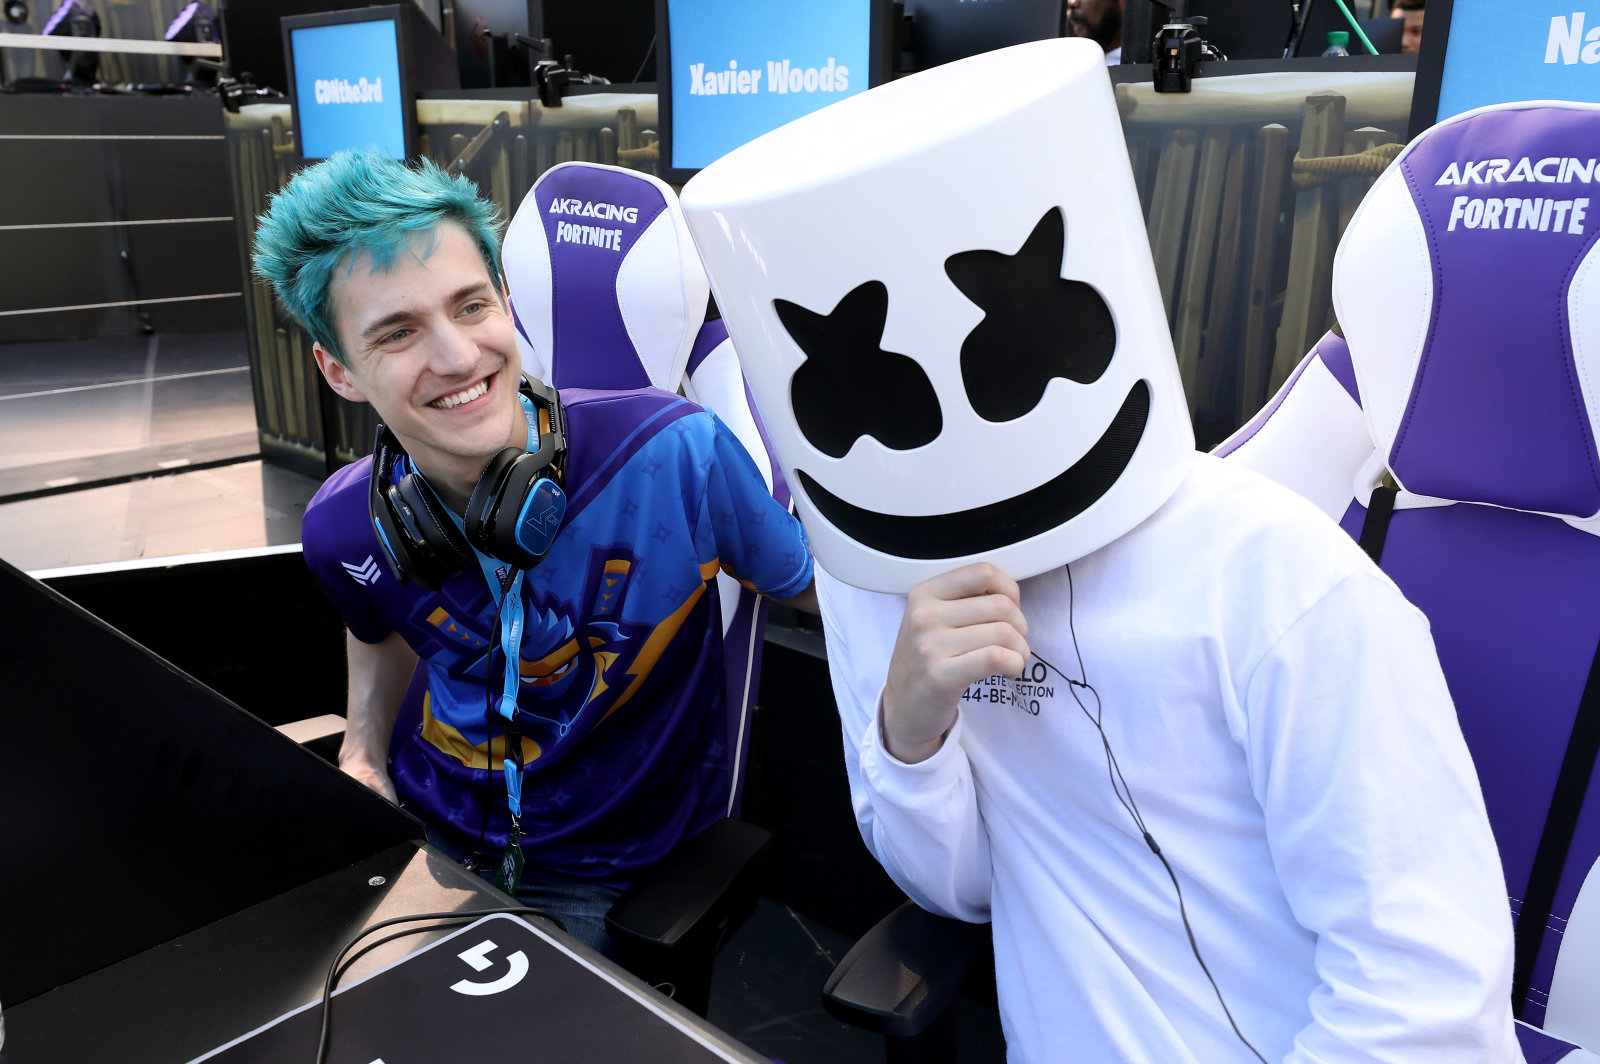 'Fortnite' E3 tournament was a taste of its esports future